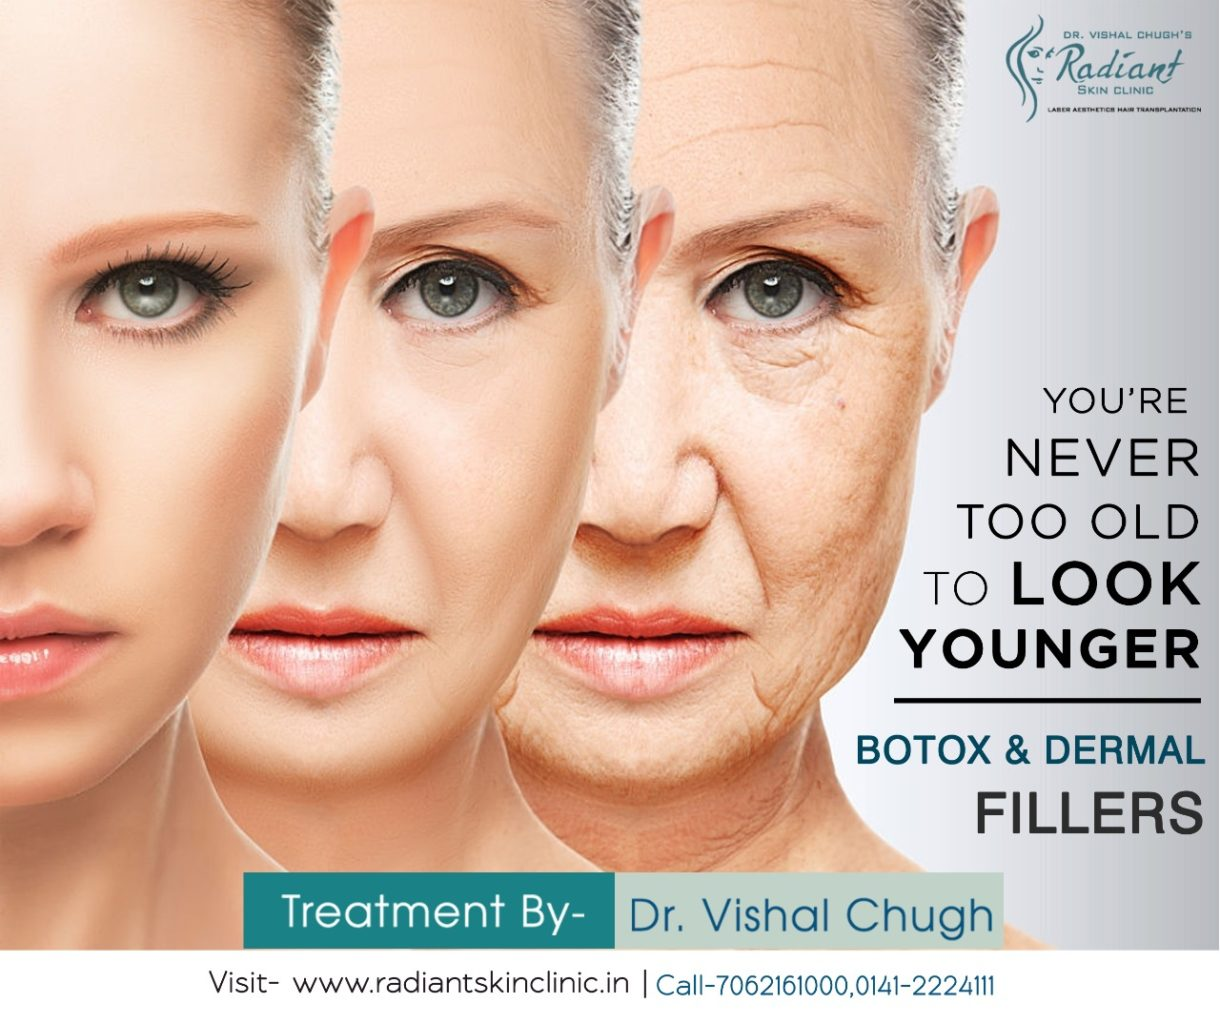 looking for botox and filler treatment in Jaipur